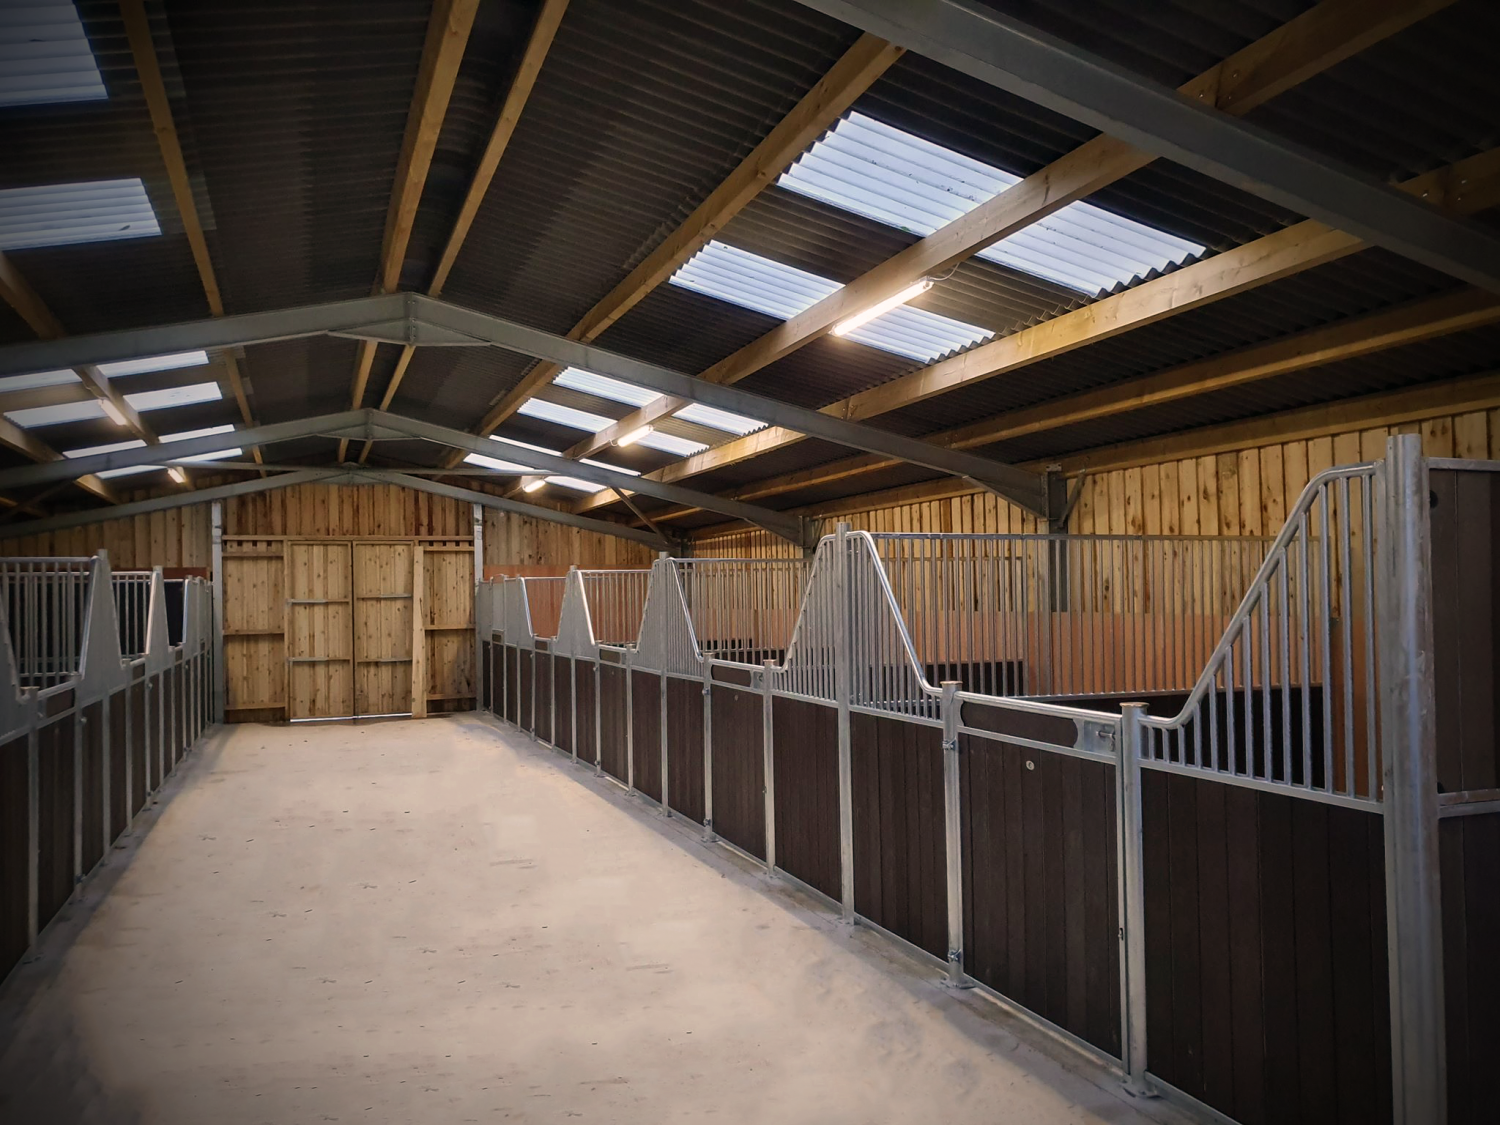 Converting Outbuildings into Stables: Financial Gain for Agricultural Building Owners?